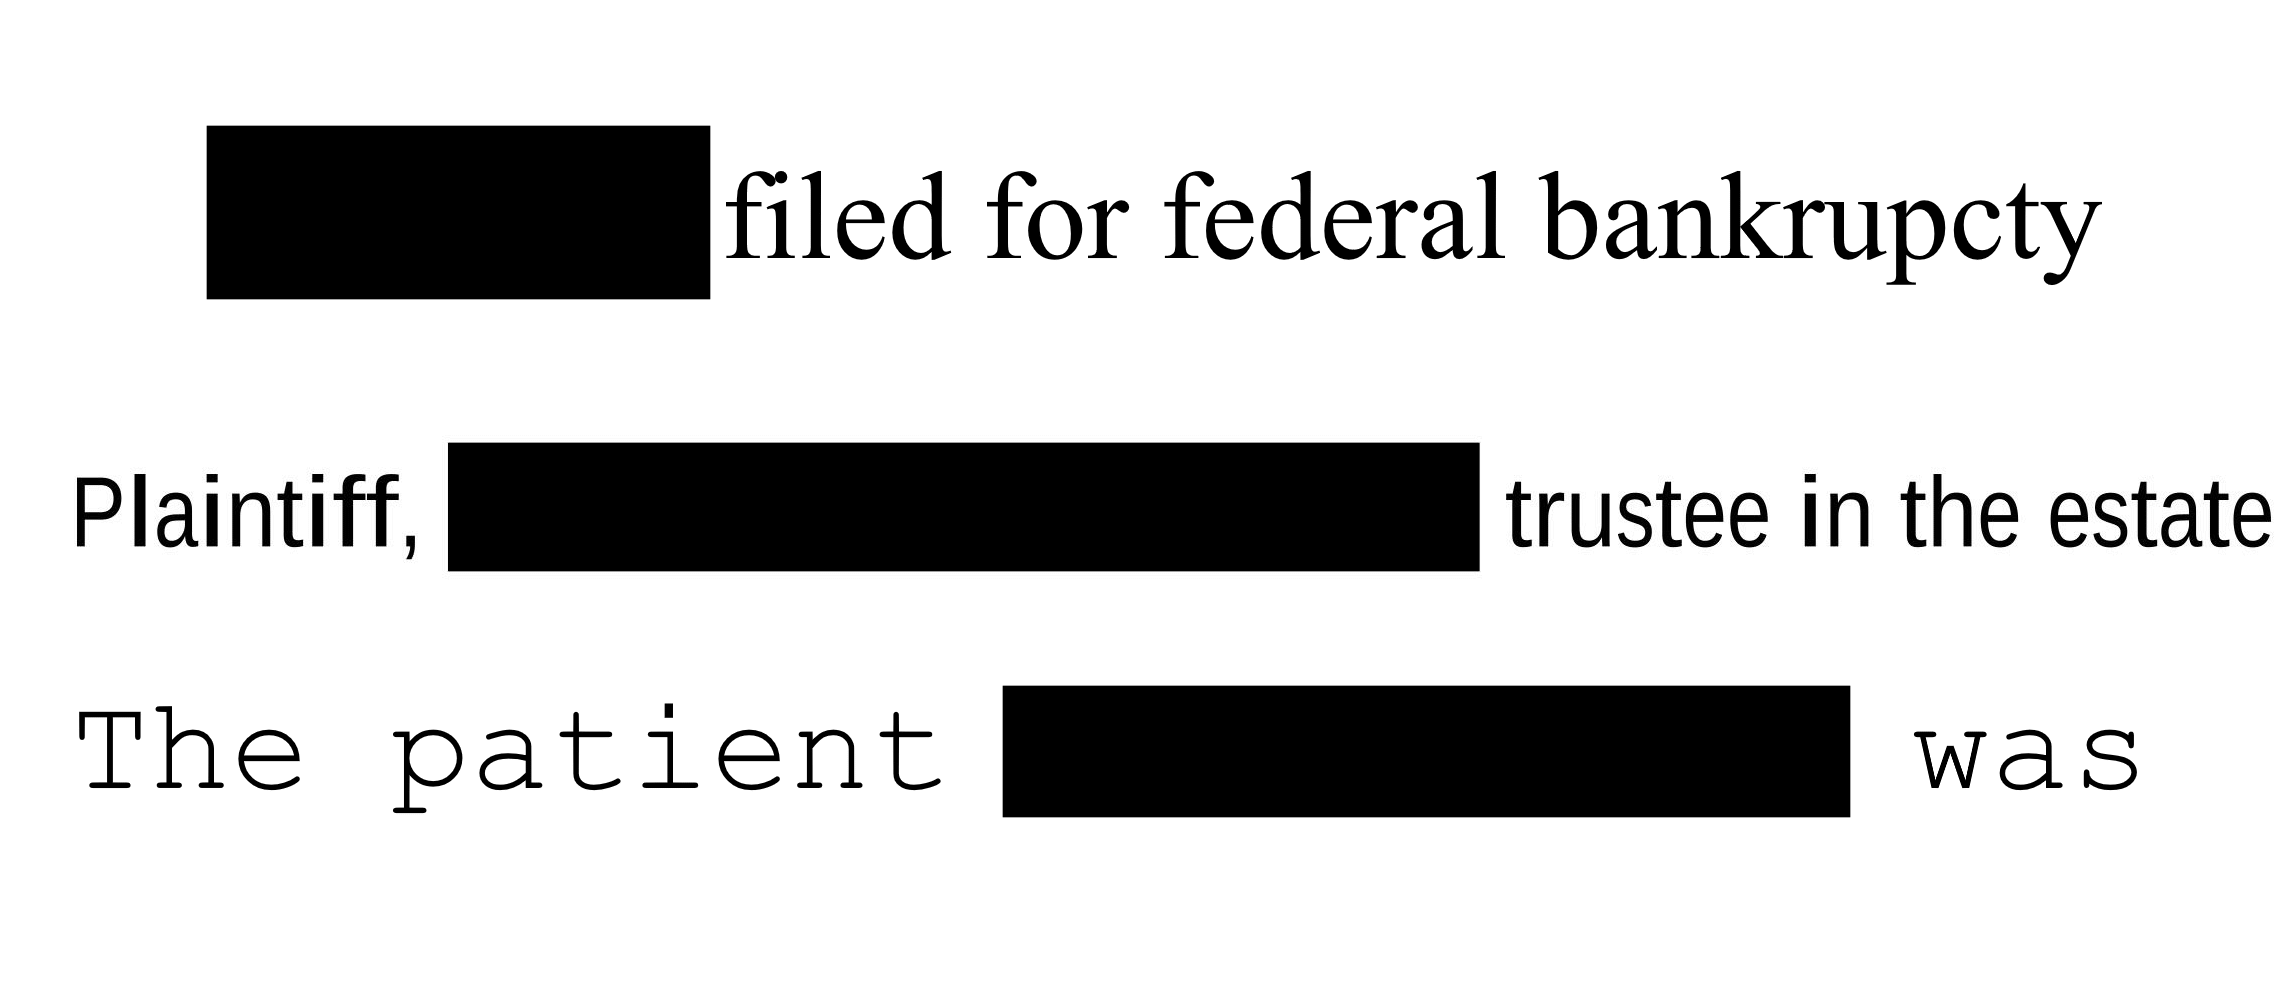 Philter can redact PII and PHI from financial, legal, and healthcare documents.